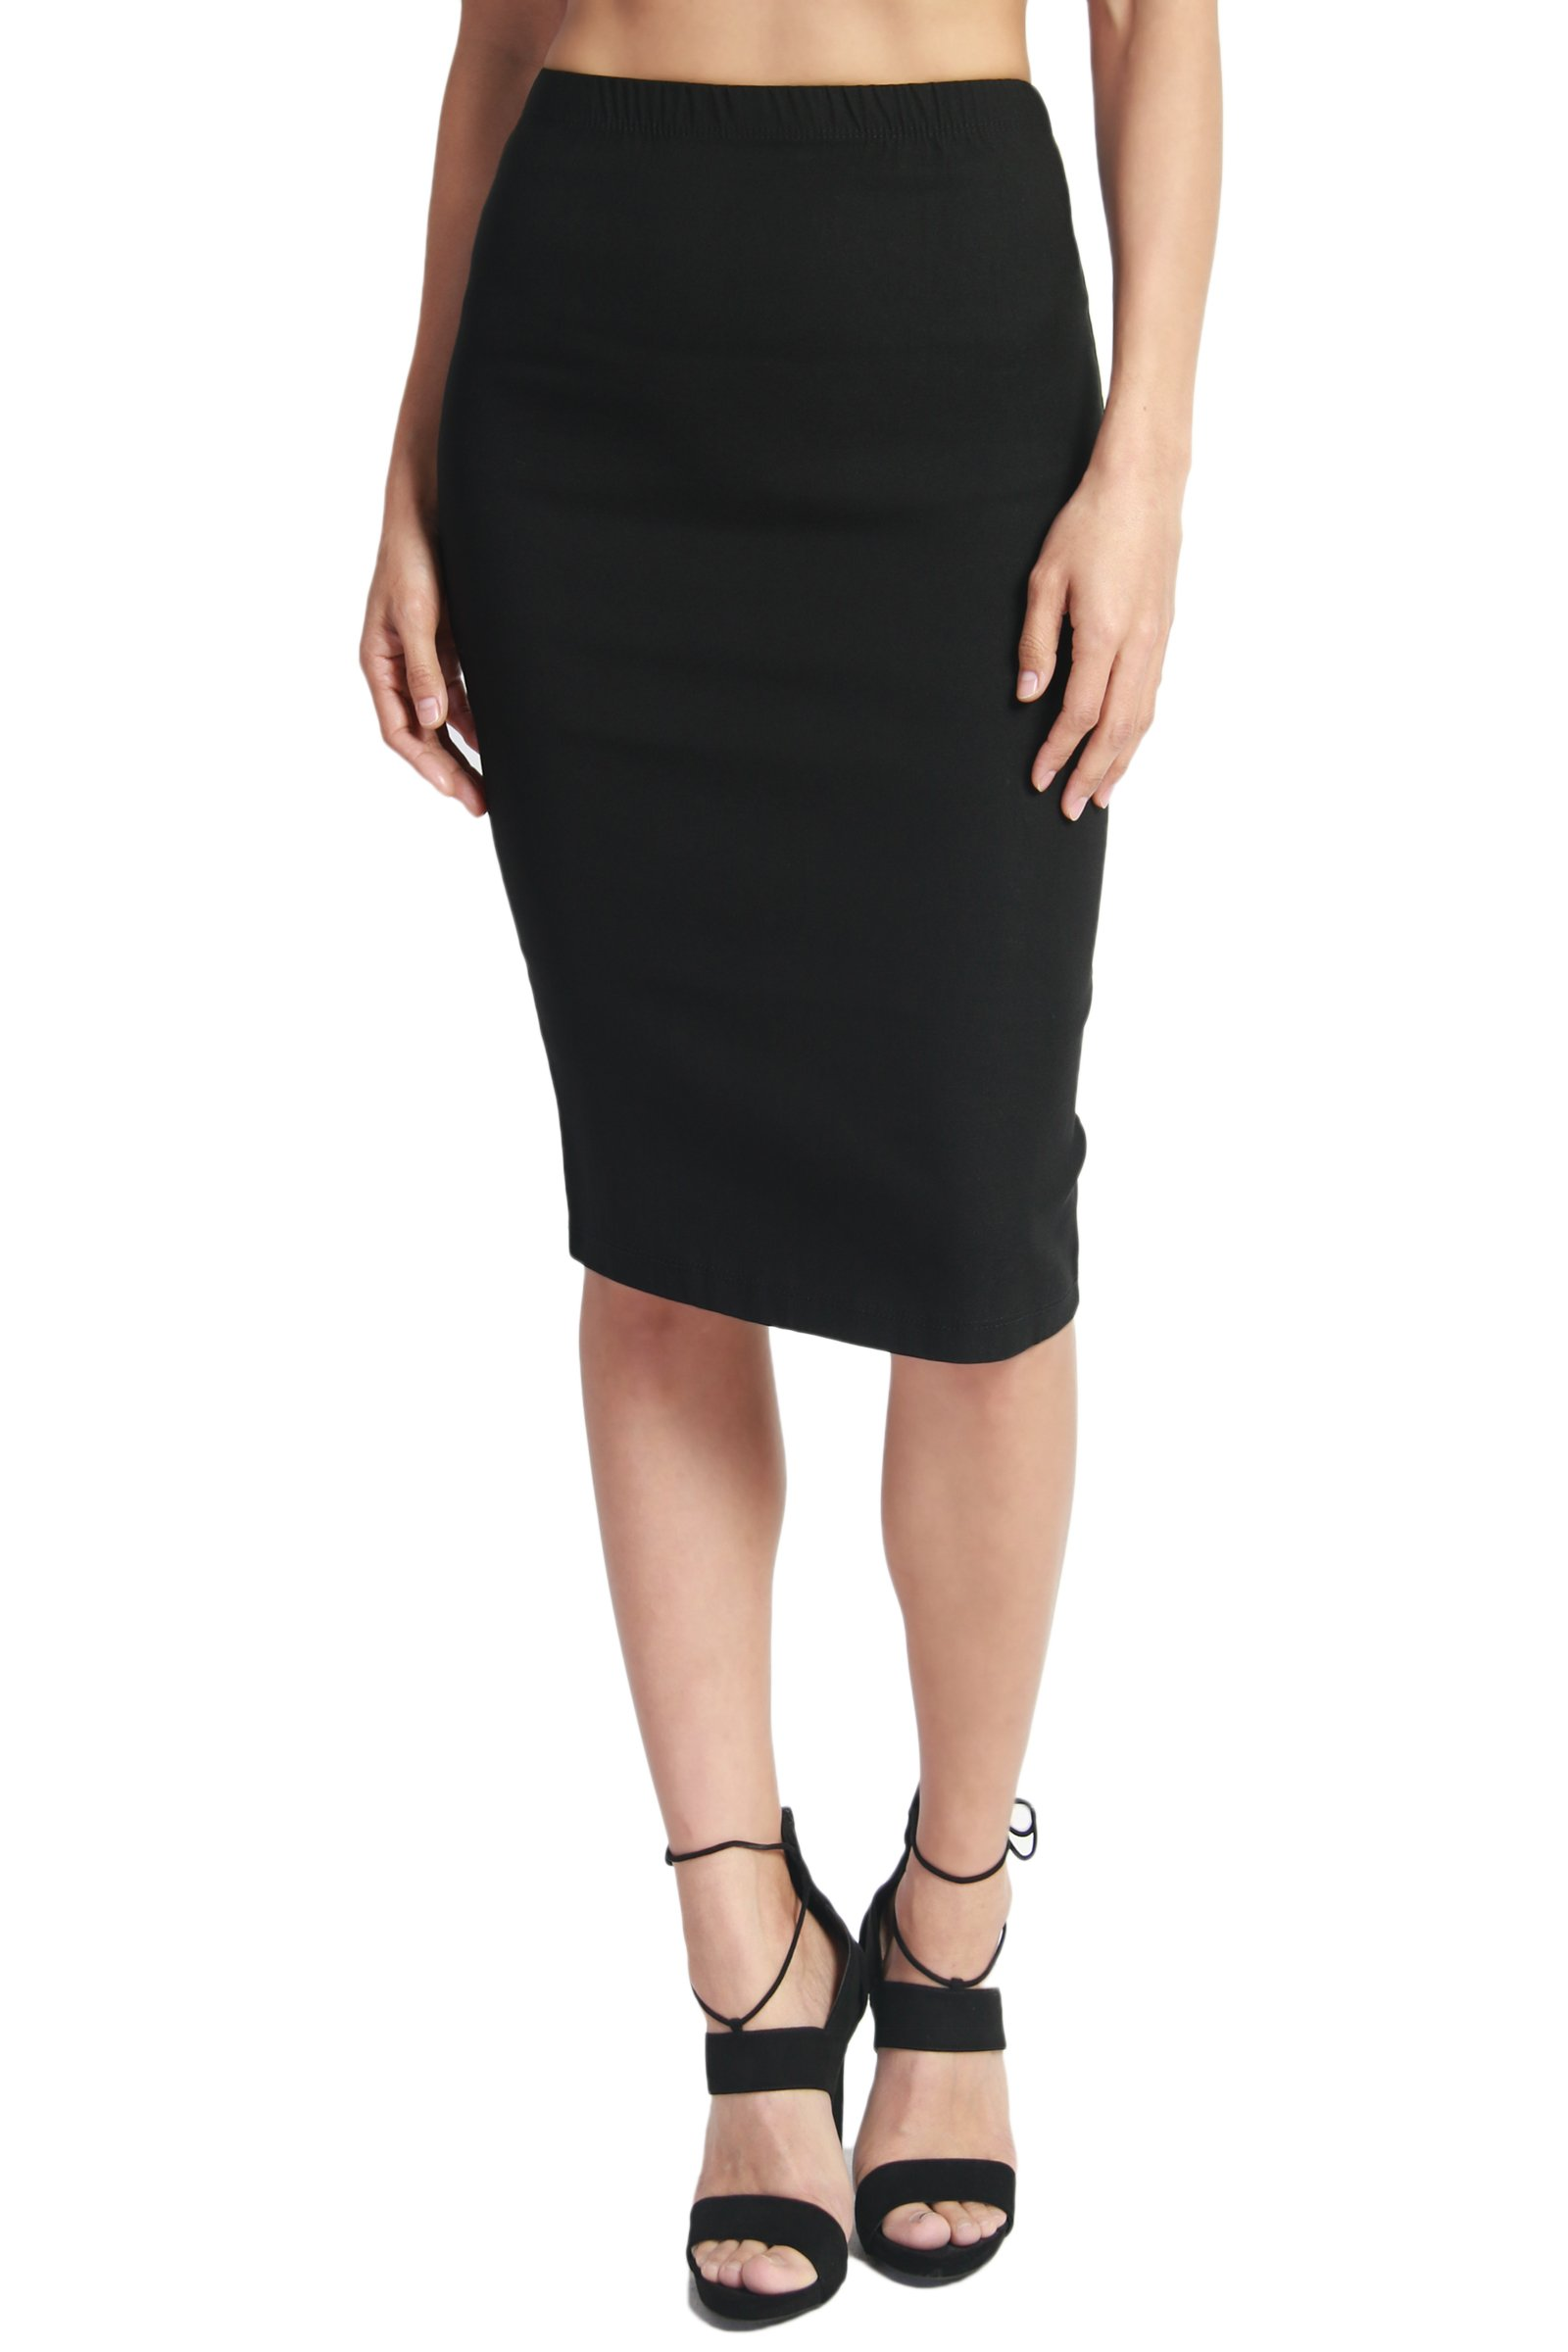 TheMogan Women's High Waist Stretch Bodycon Pencil Skirt Black 3XL